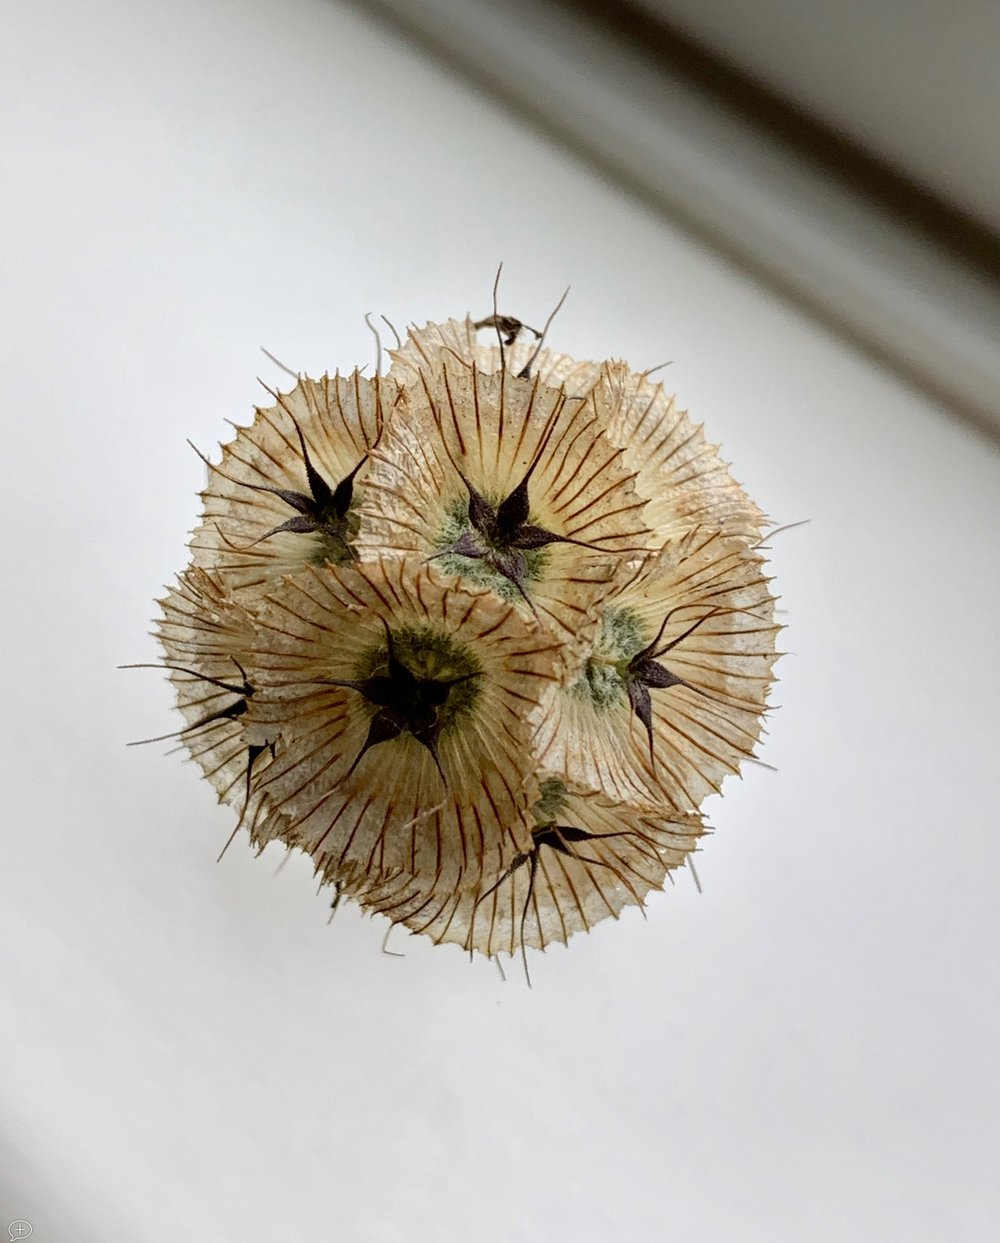 """5 . Dried Scabiosa Flower . iPhone XS, 2018. Saratoga Springs, NY.( Canvas Photo, 16"""" x 20""""). This flower measures less than an inch in diameter, but a close-up reveals such beautiful colors and patterns.  ©2018 Sean Walmsley"""